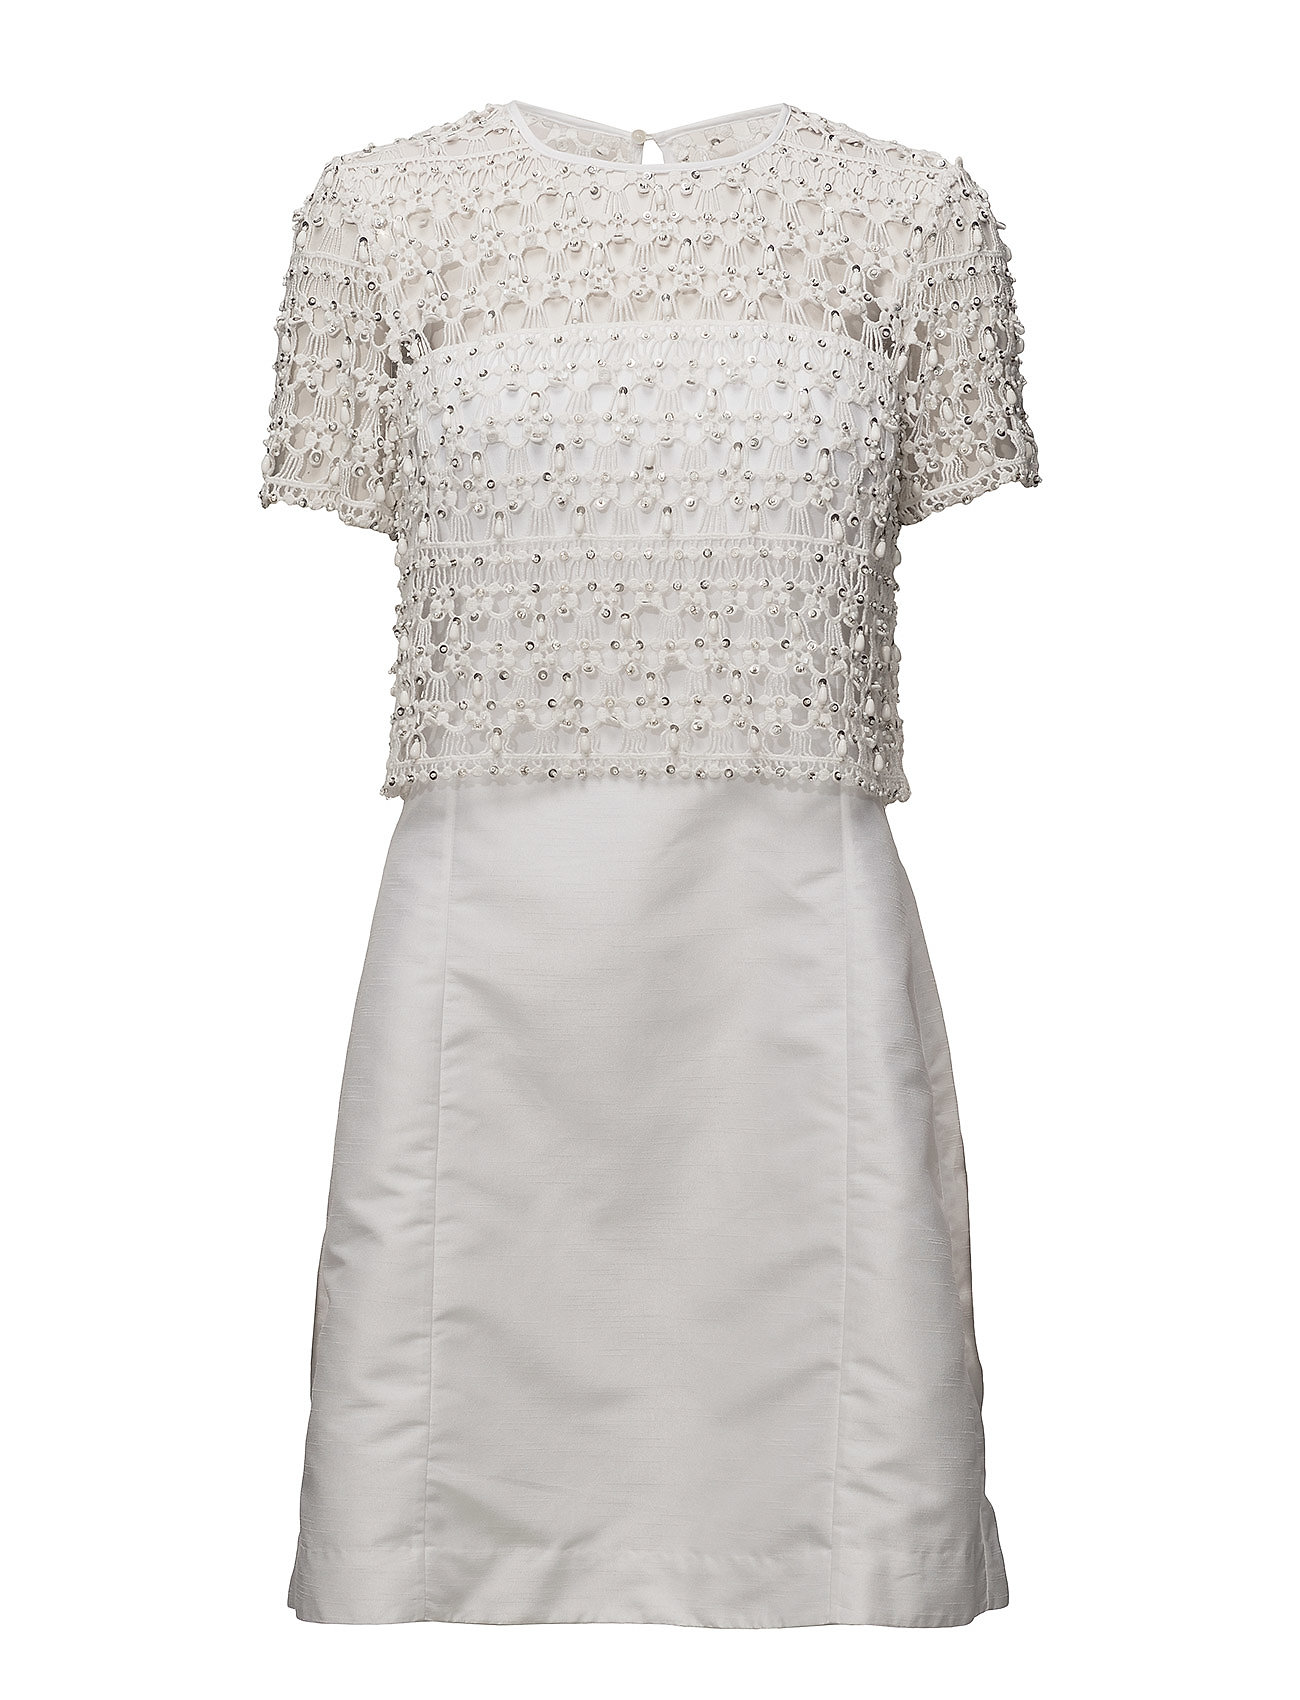 Consenza Sparkle Embellished Wedding Dress (Summer White) (£250 ...